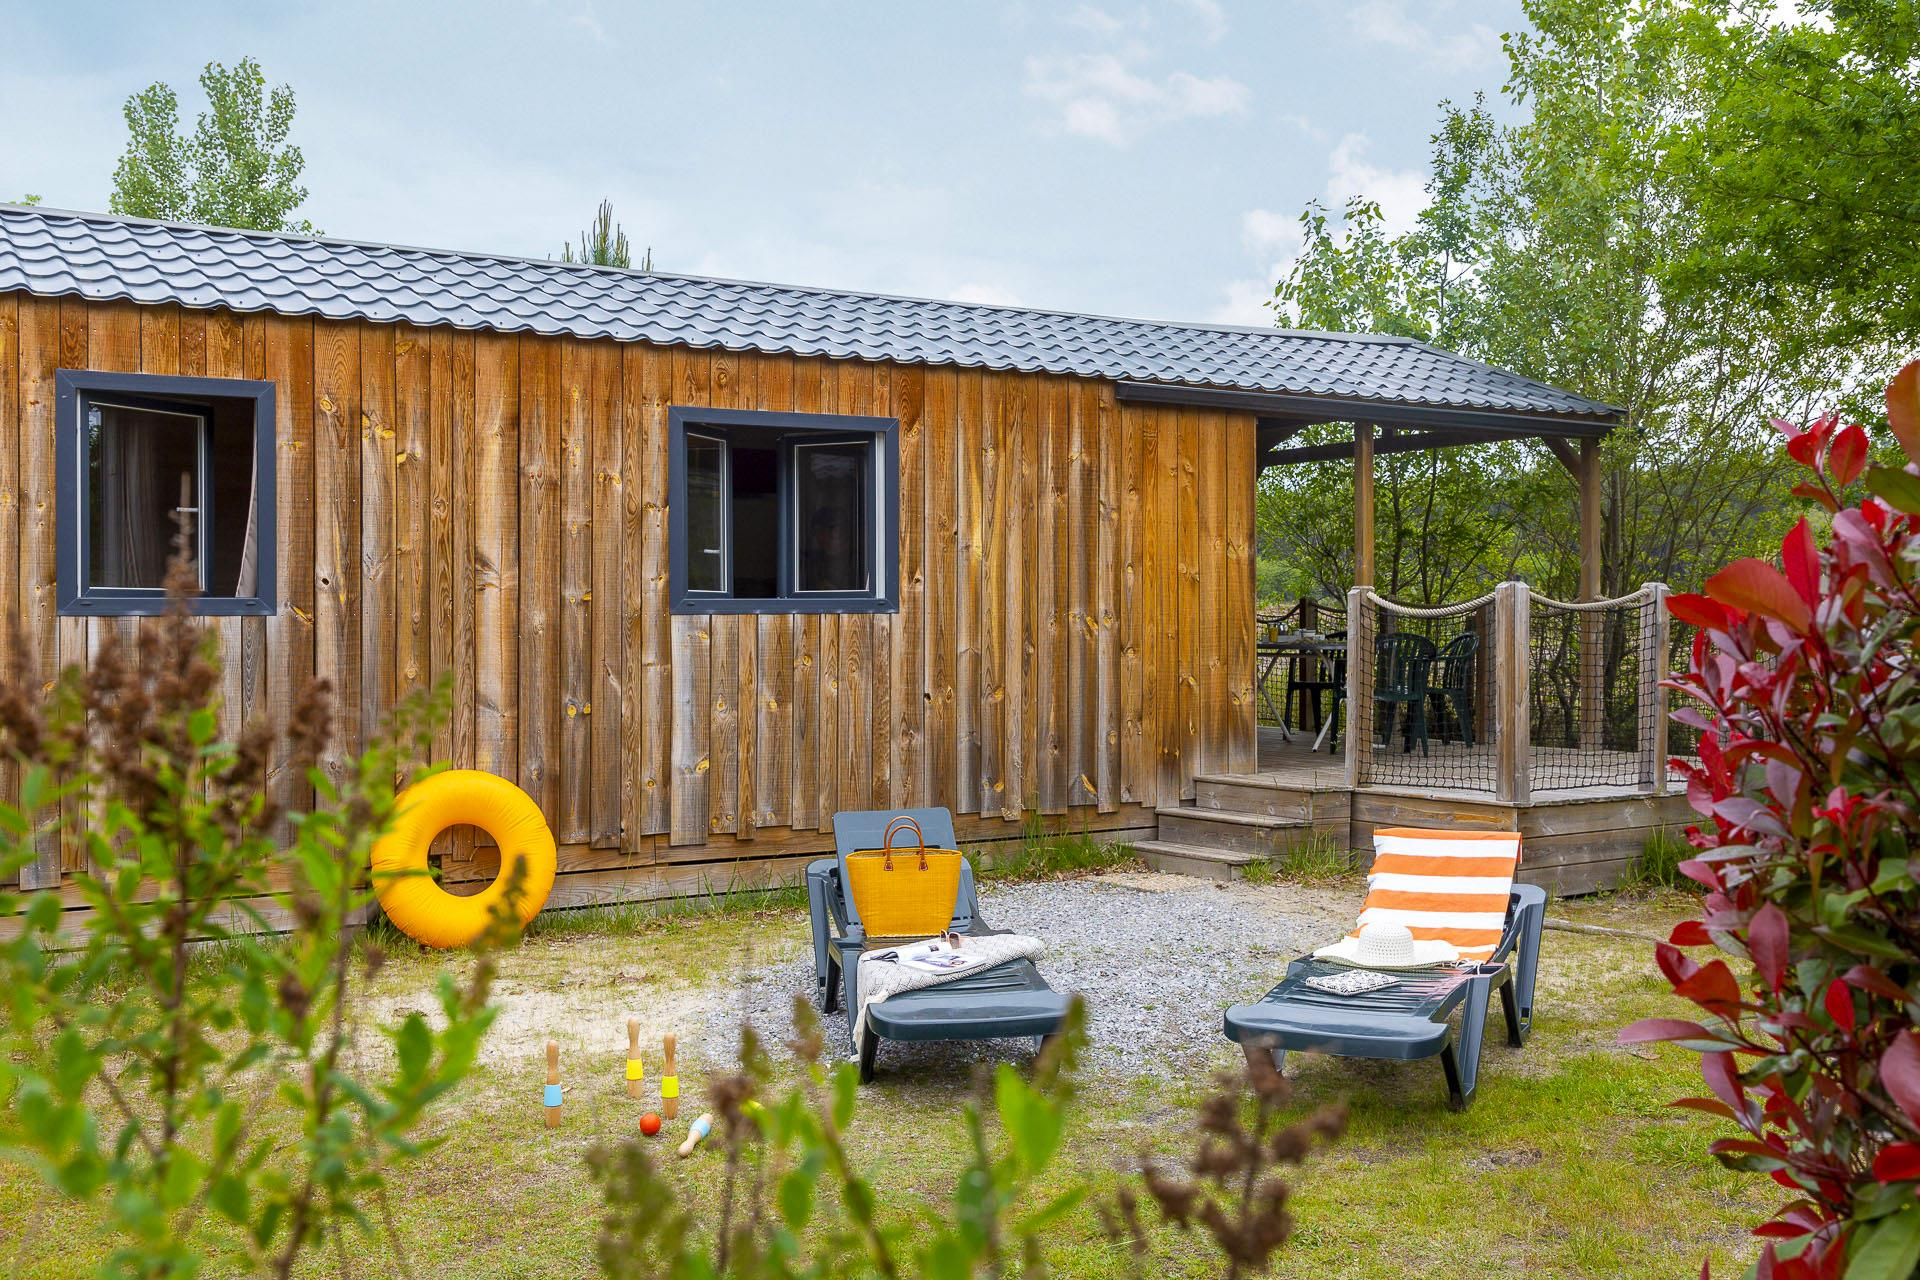 Location - Cottage 2 Chambres**** - Camping Sandaya Le Col Vert